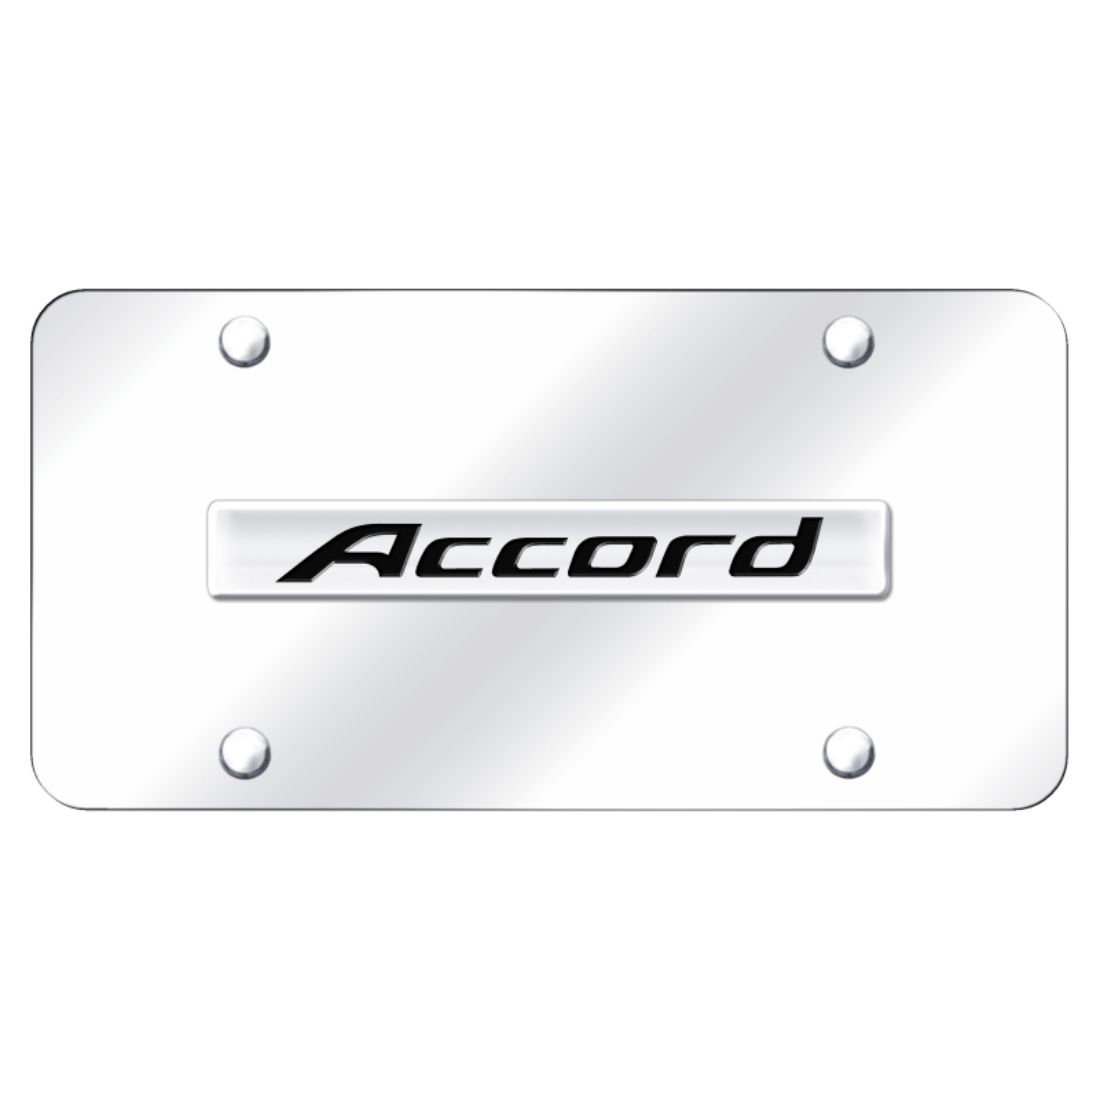 Honda Accord Chrome Stainless Steel License Plate